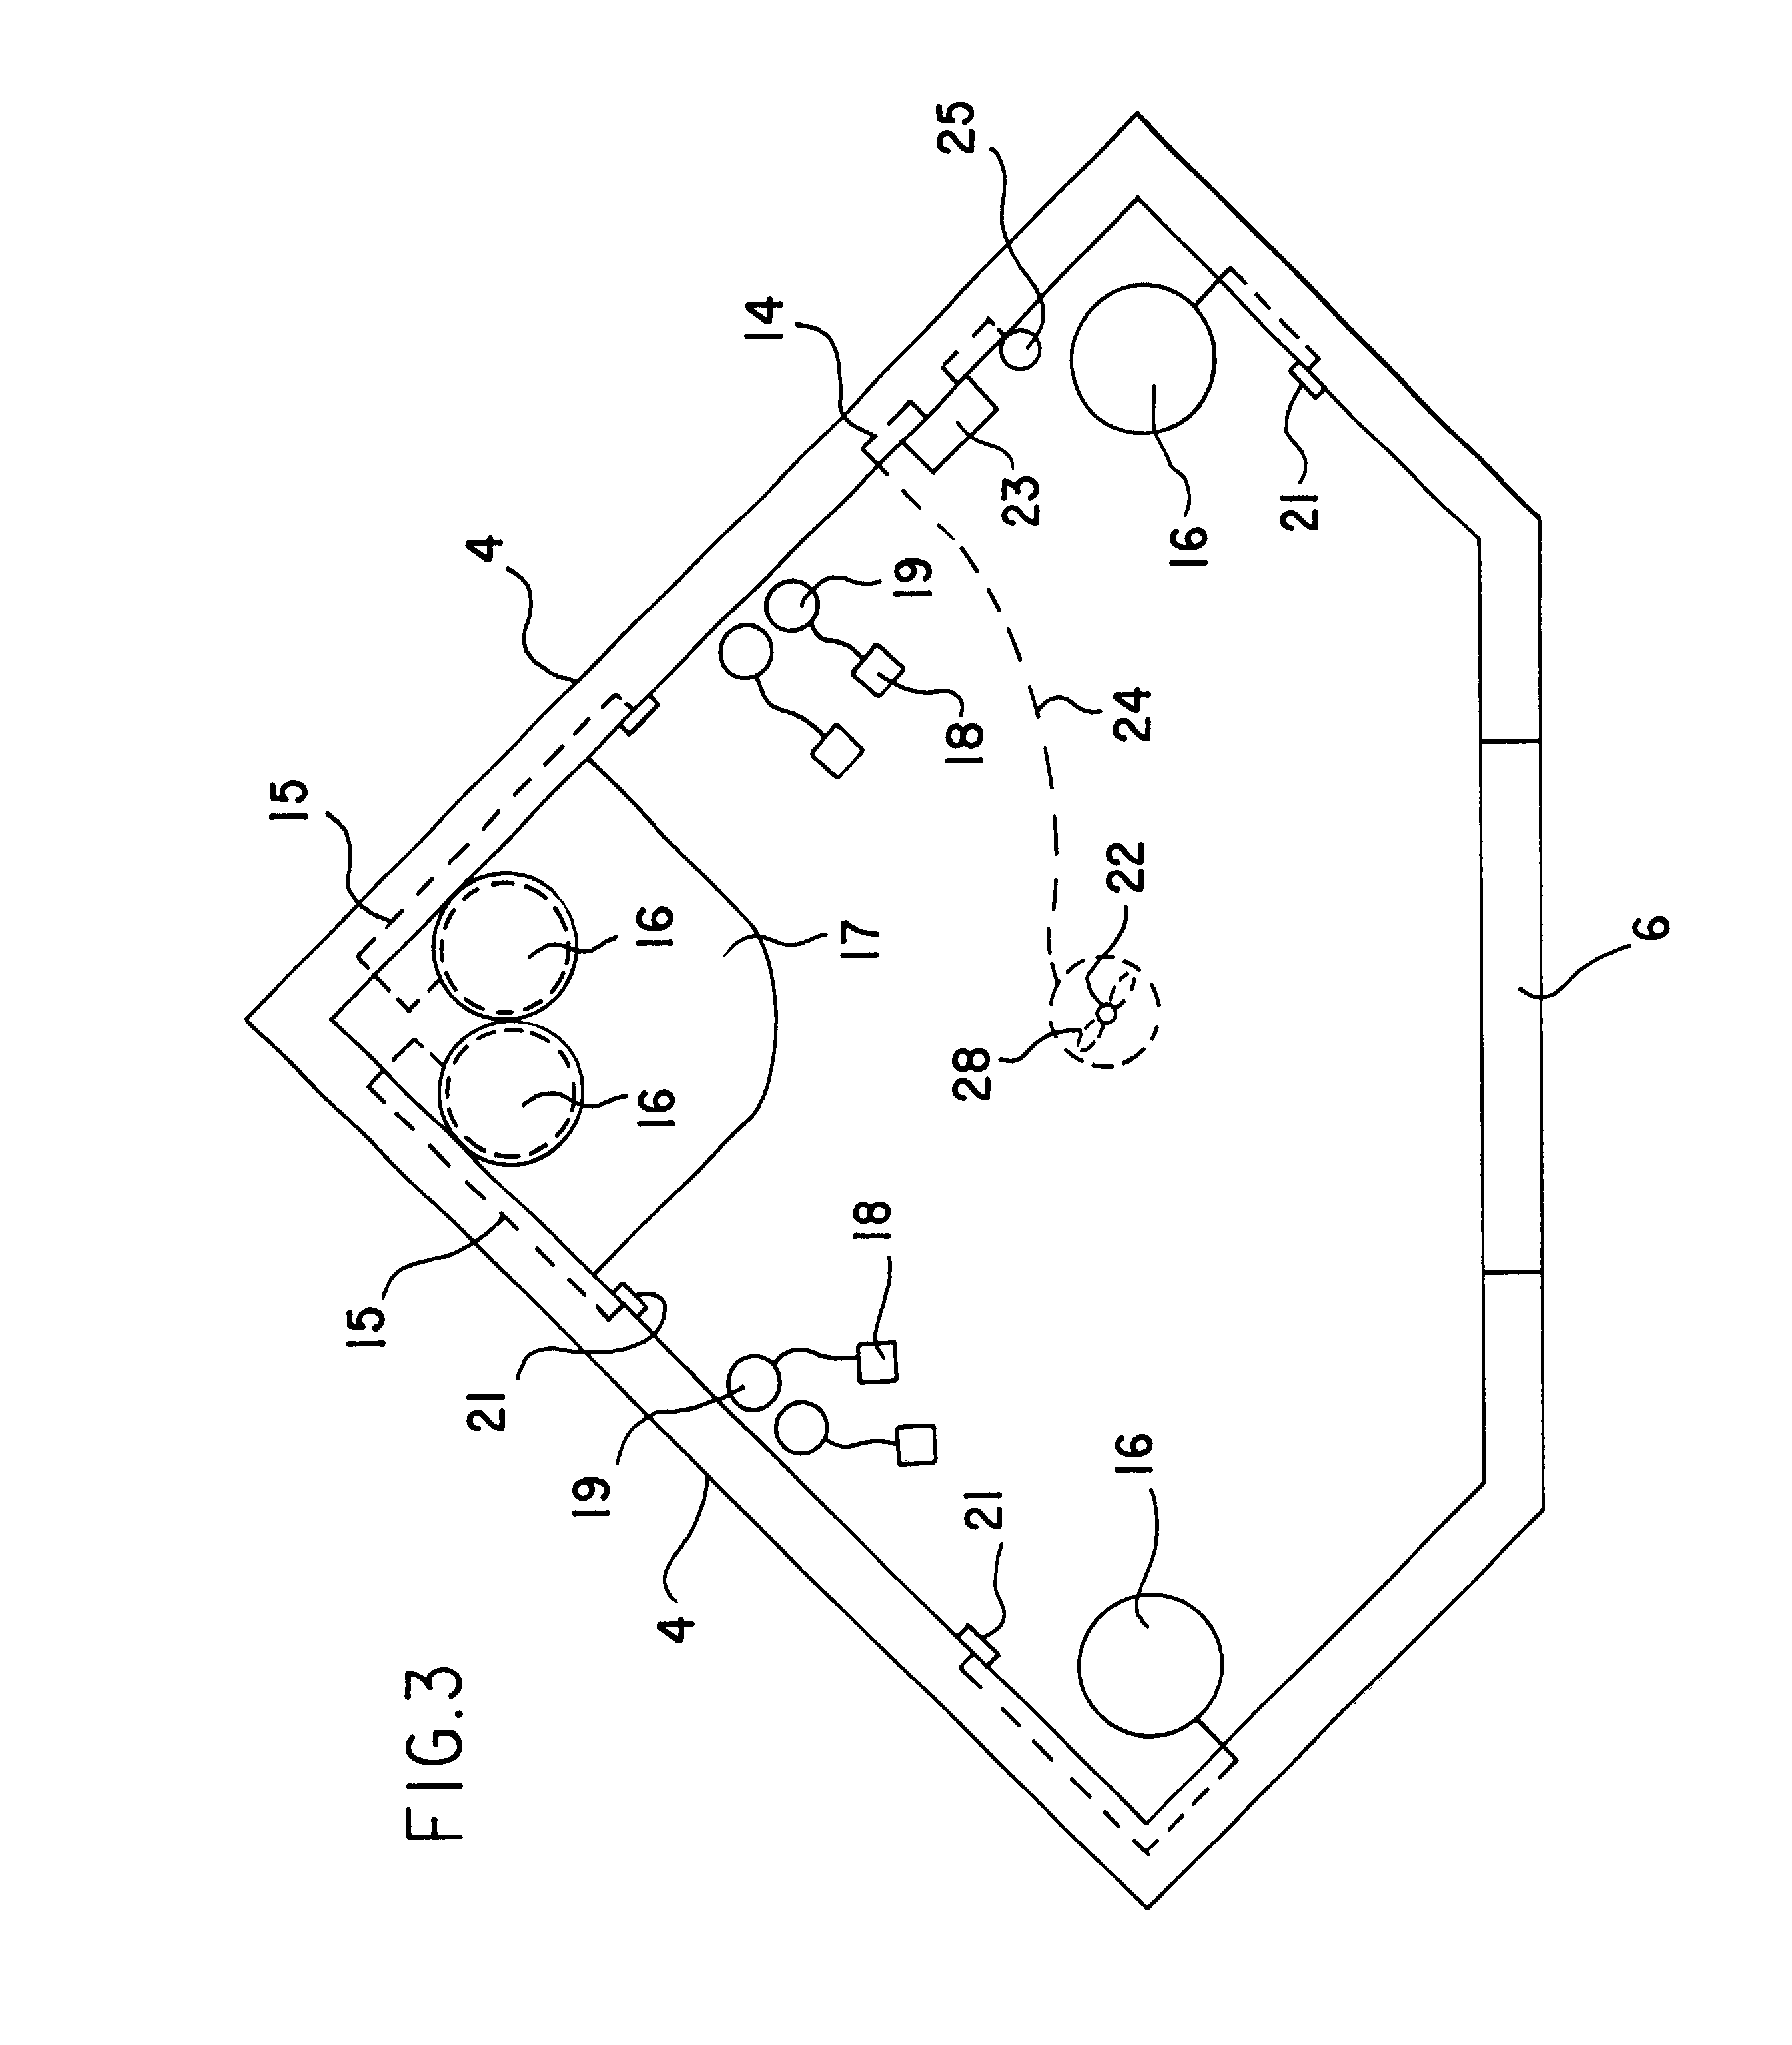 patent us6874284 fire safety unit patents Fire Sprinkler System Air Over Water patent drawing